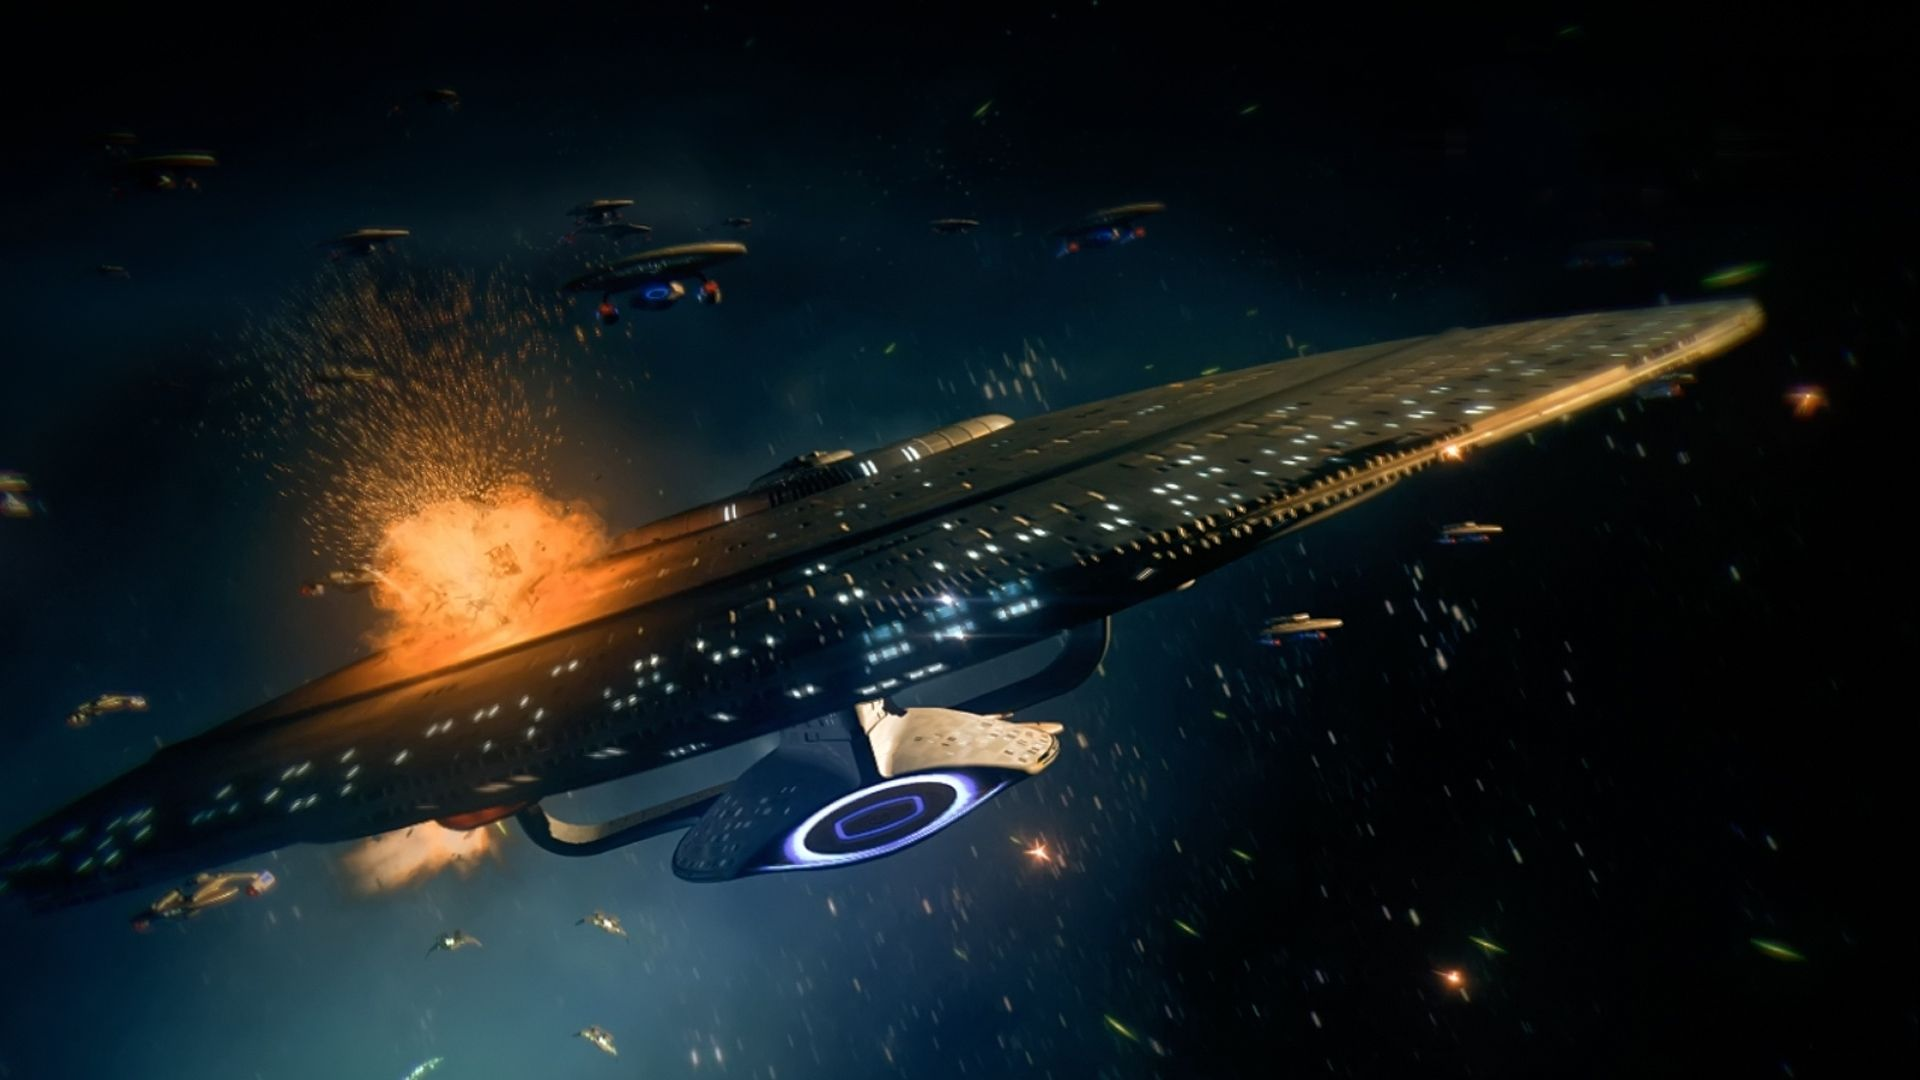 star trek hd wallpapers - sf wallpaper